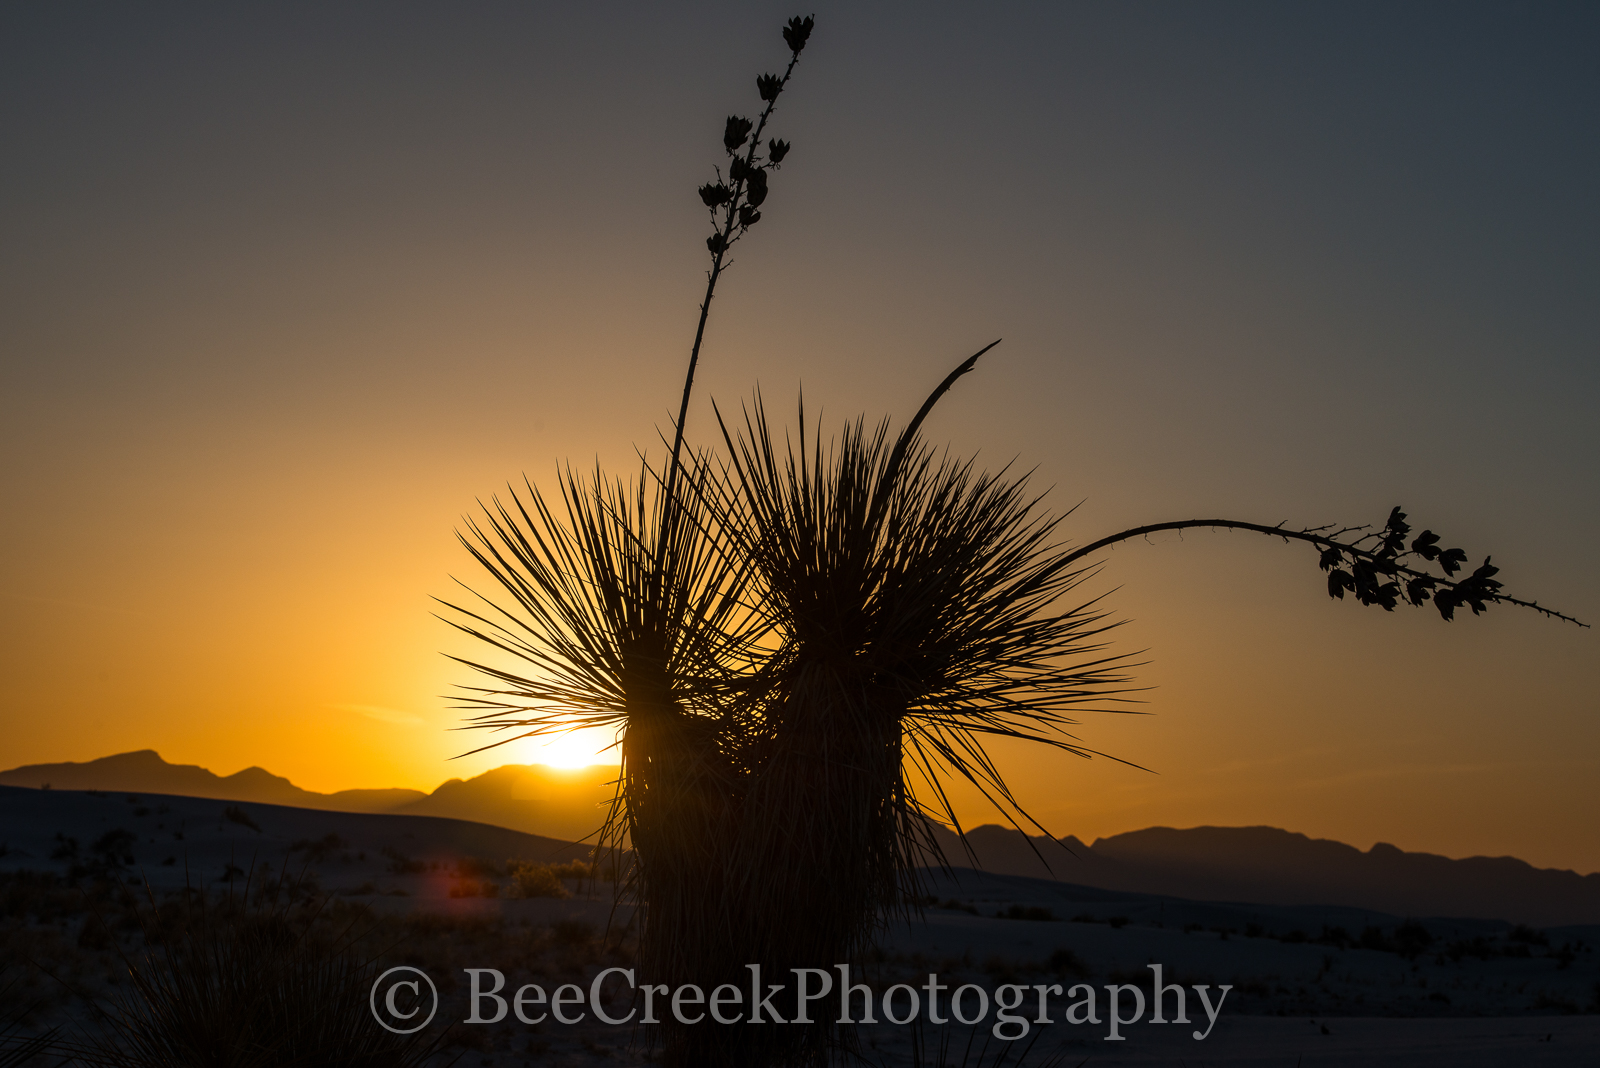 Sunset in White Sands- The wonderful landscape in White Sands National Monument was beautiful. This wonderful area...